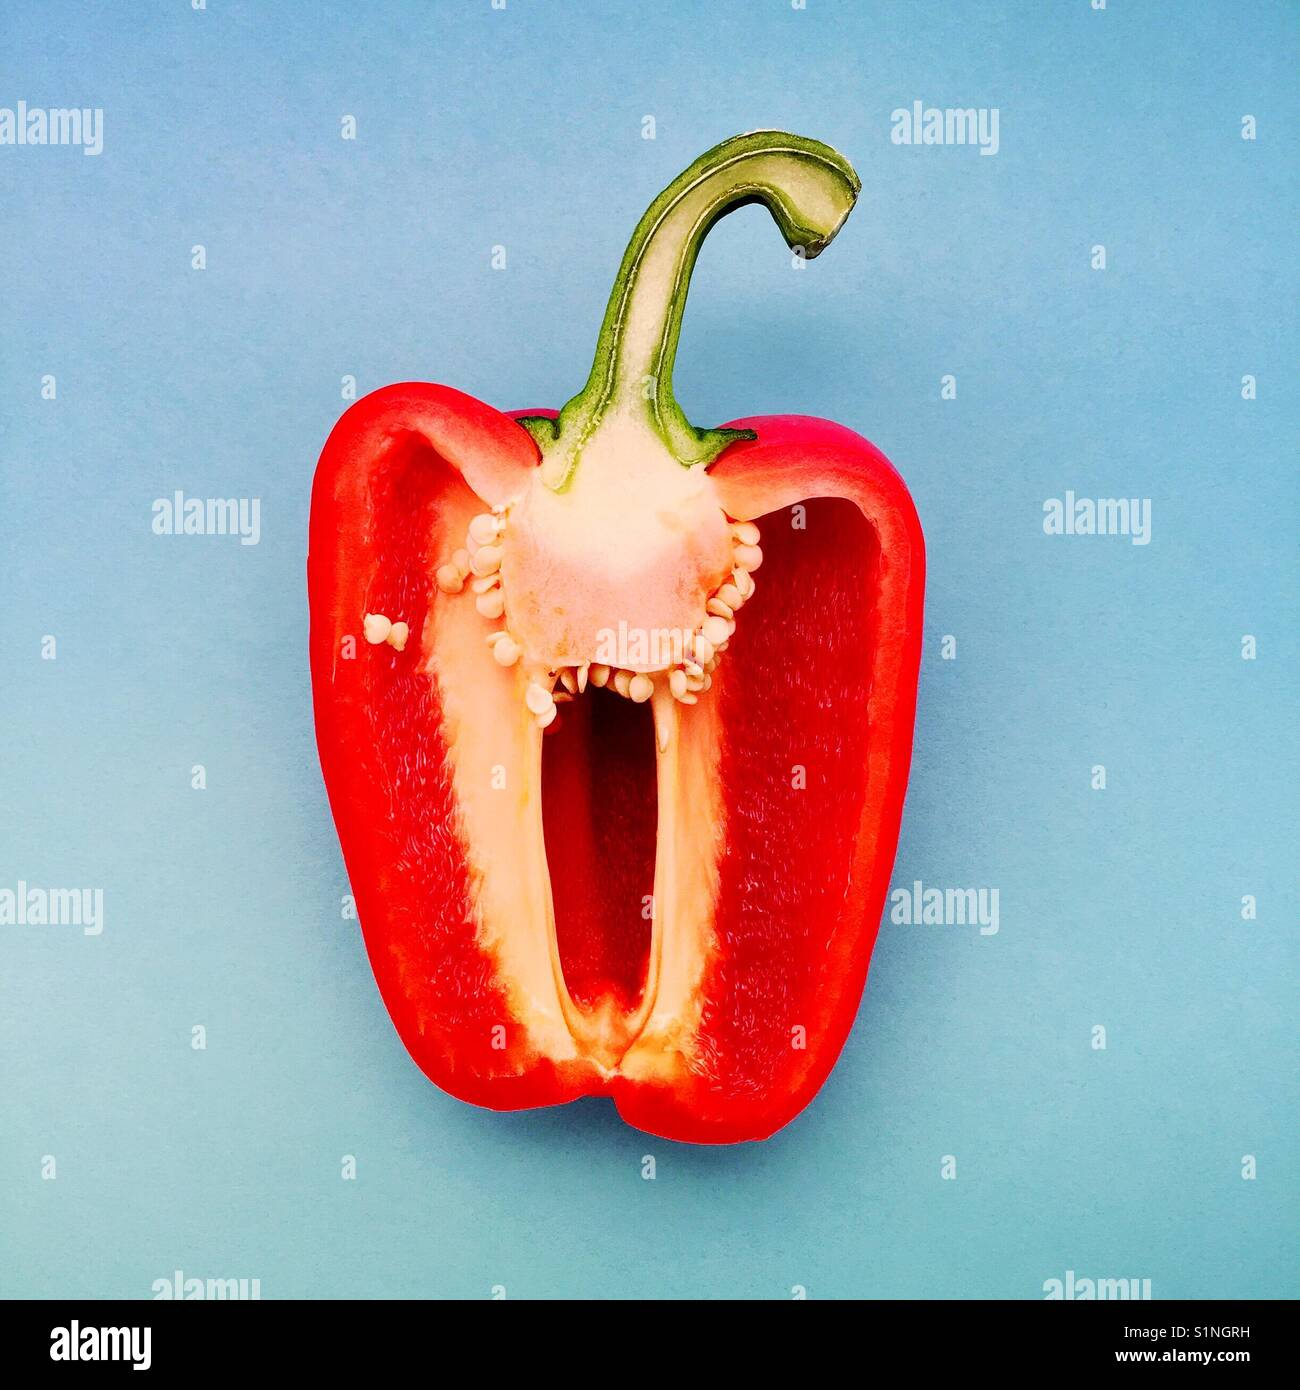 An overhead detail shot of half a red pepper centred on a blue background - Stock Image